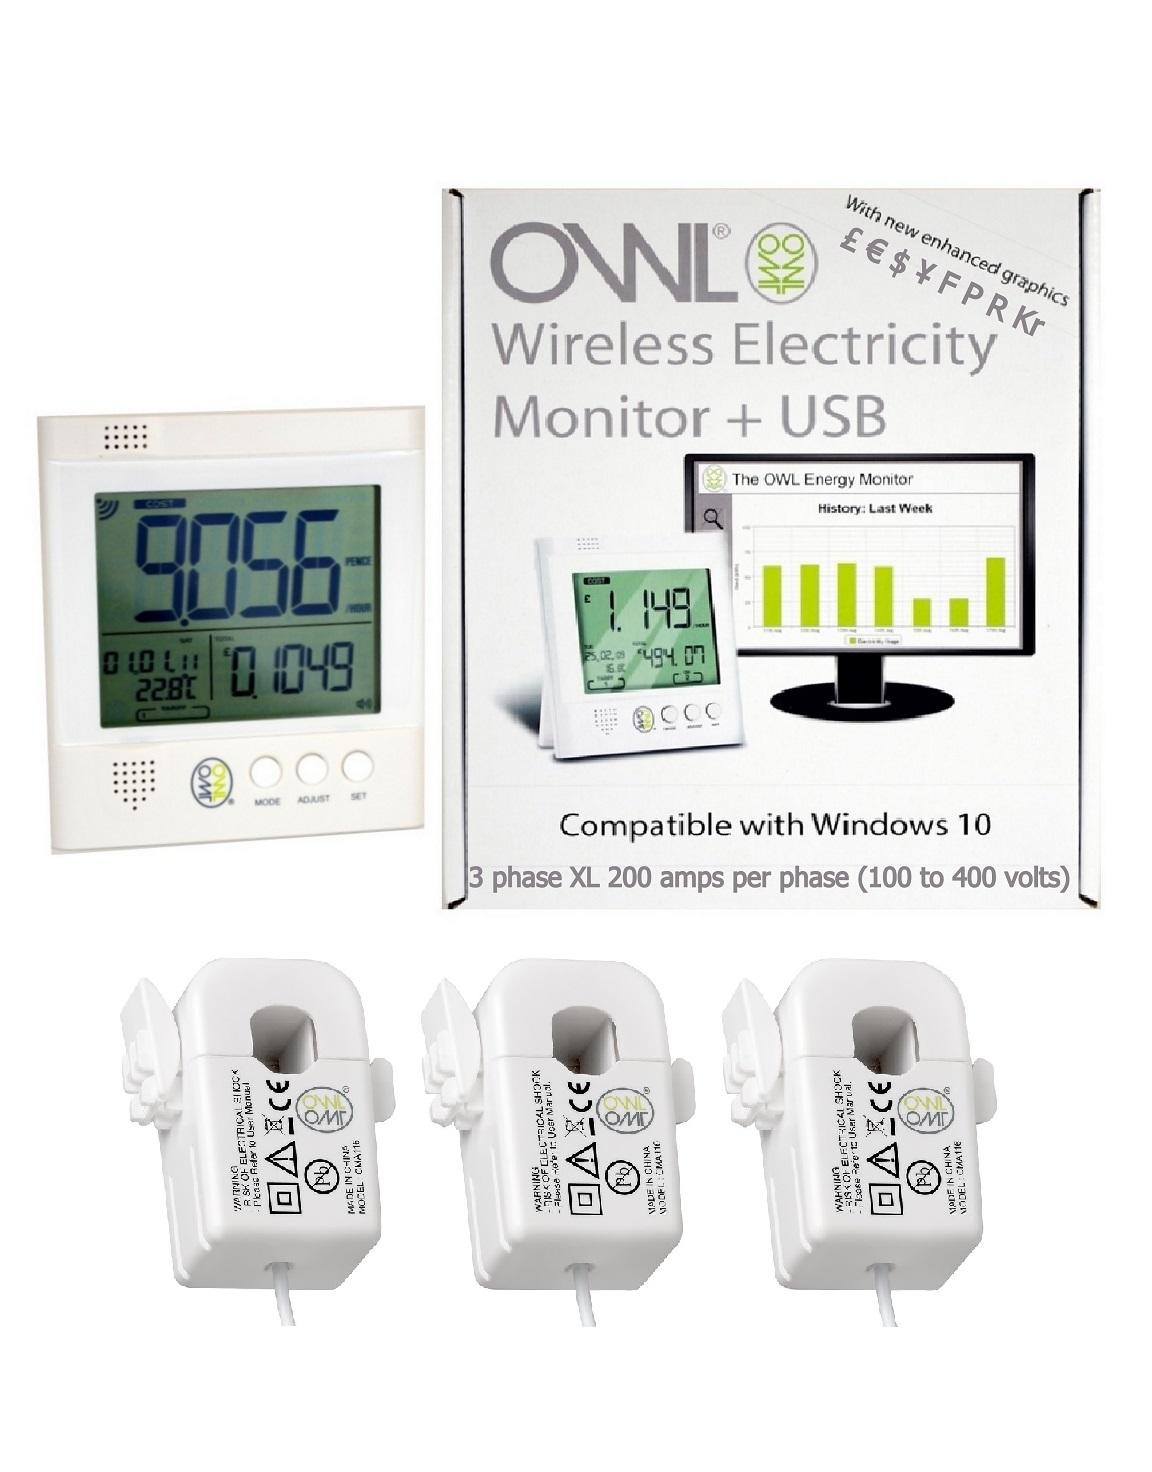 OWL Wireless Electricity Monitor +USB 3 Phase XL (Max 200 Amp Per Phase 100-400v)